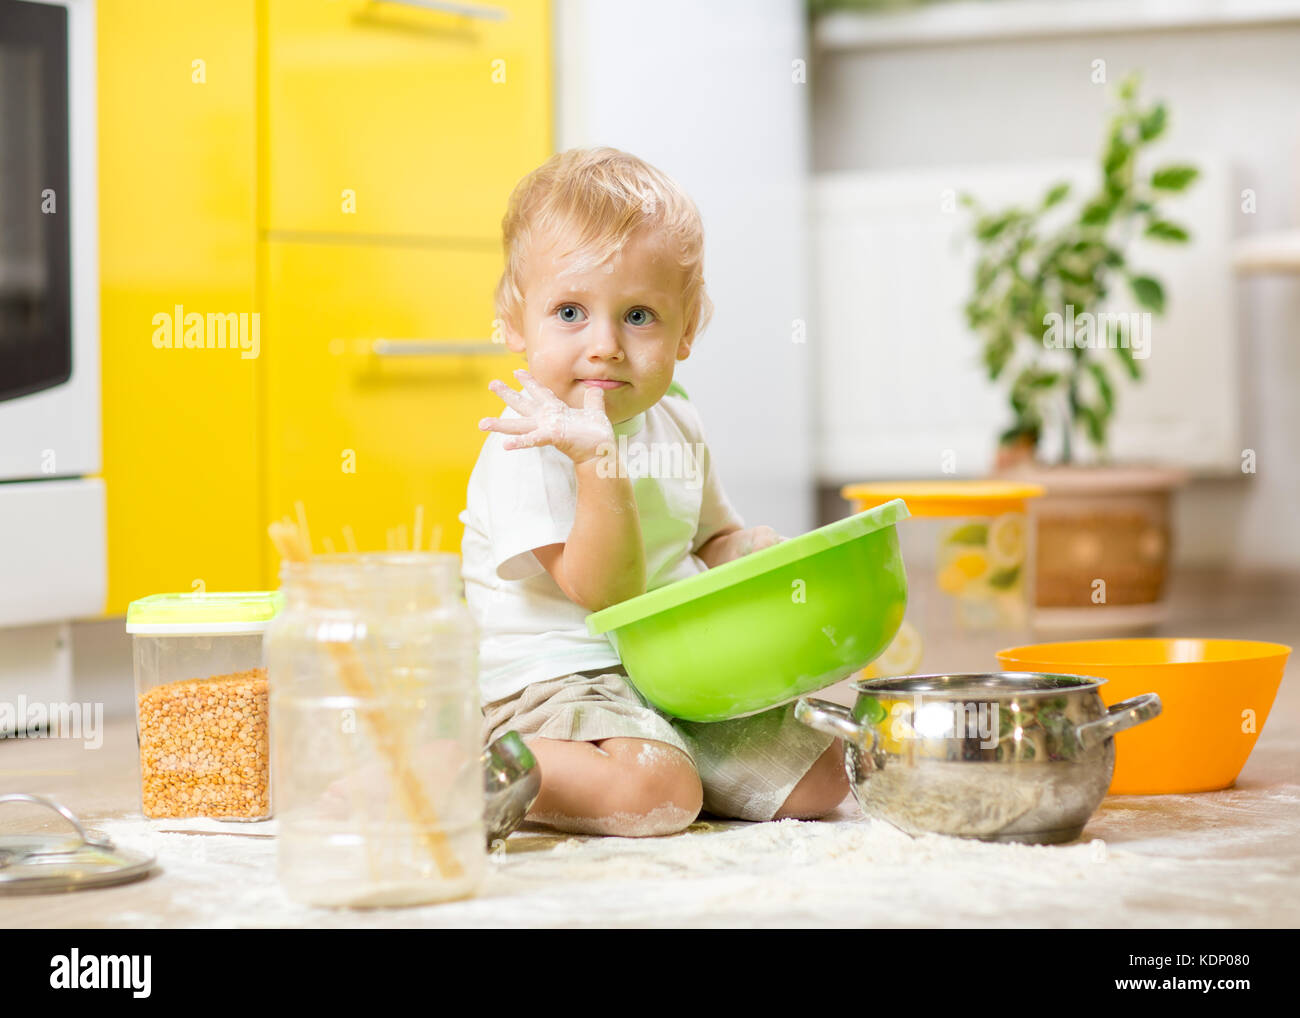 Child Playing On Kitchen Floor